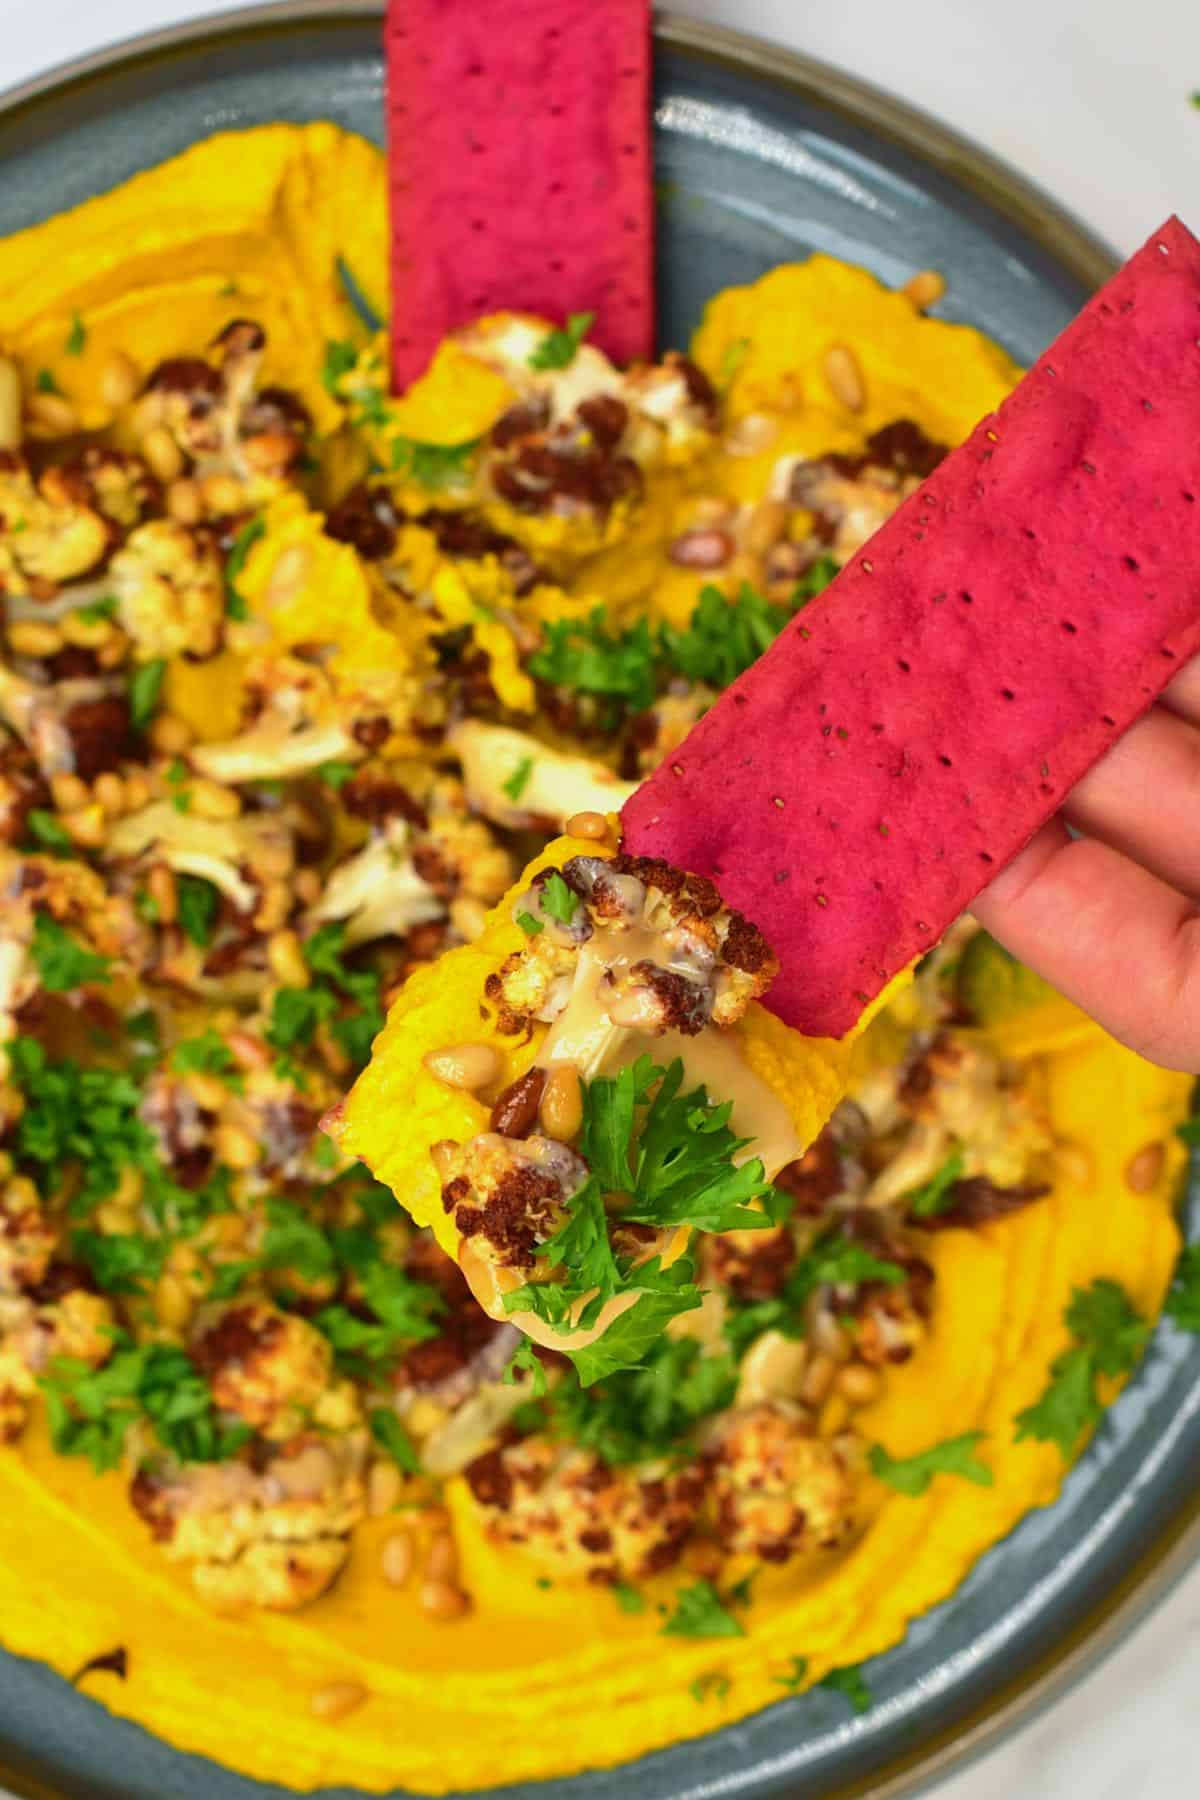 Cracker topped with turmeric hummus